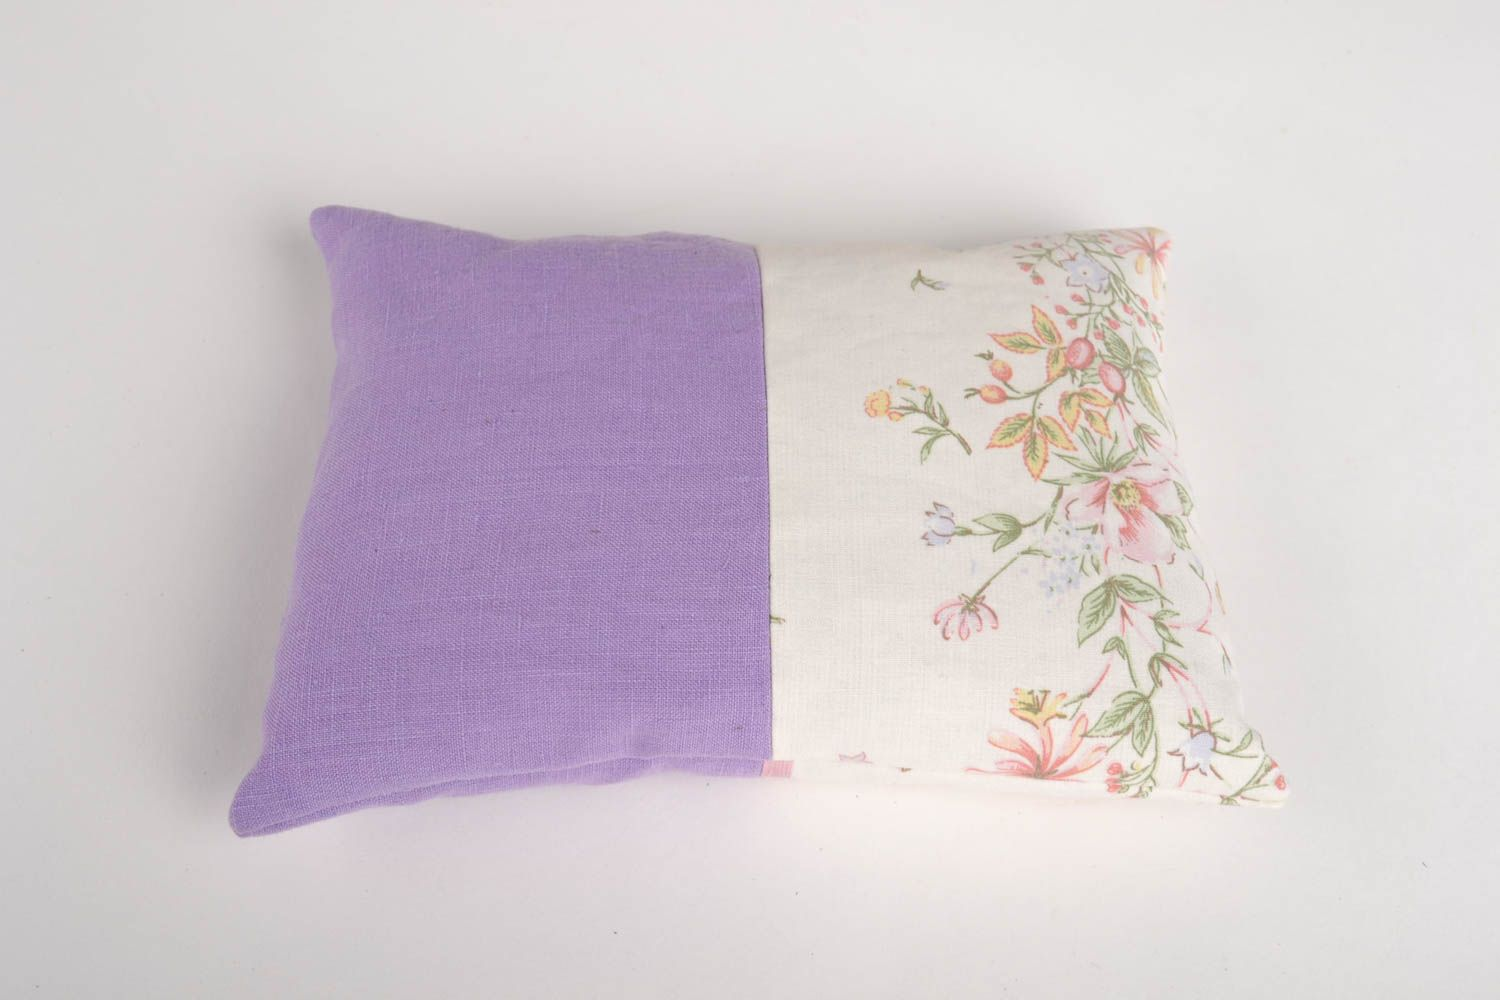 Homemade scented sachet therapeutic pillows aroma therapy home decorations photo 3